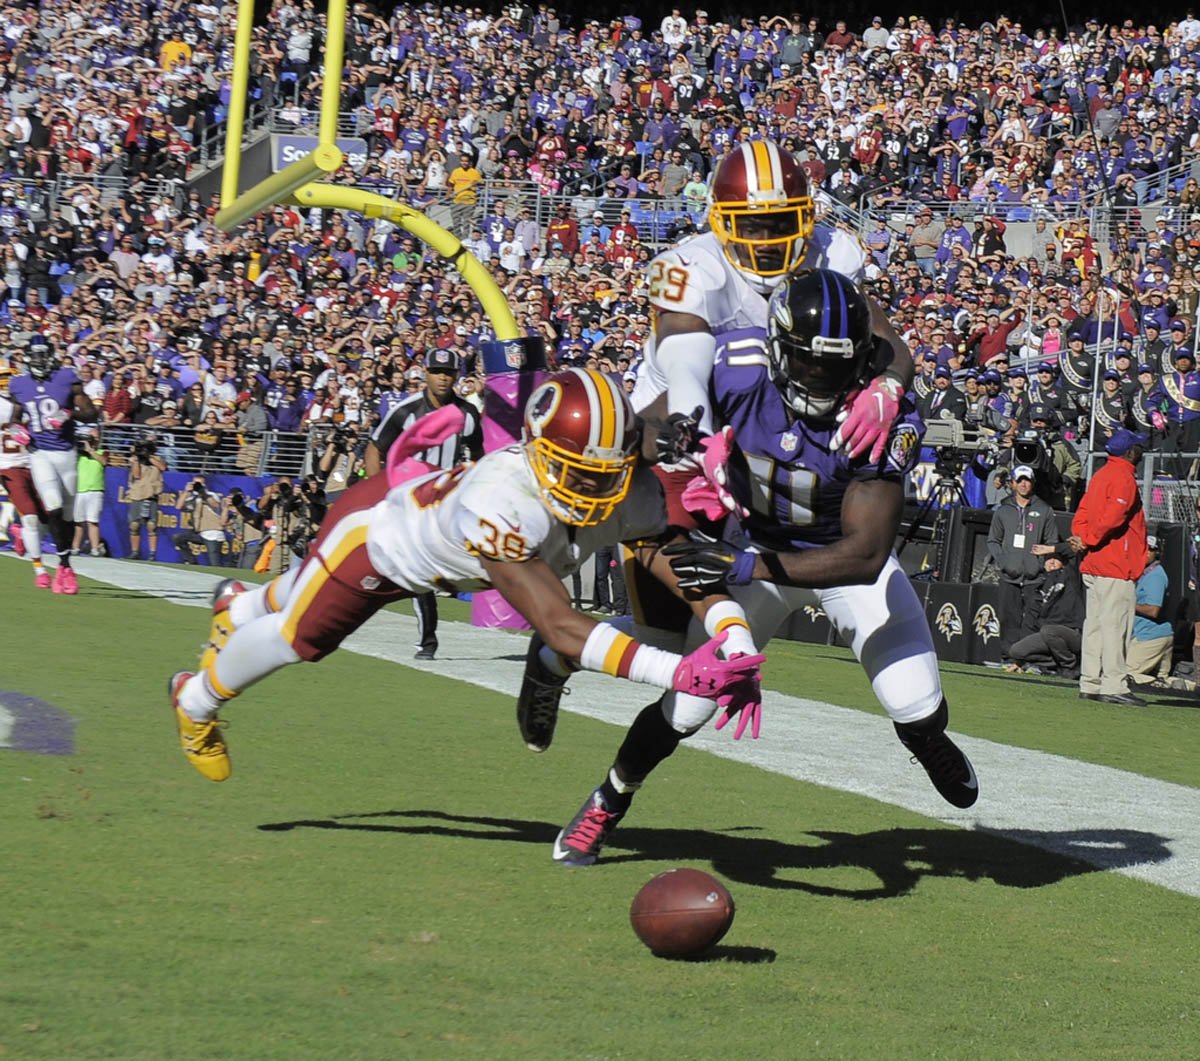 Redskins New Stadium: Rough Cut: A Raw Edit From Ravens Loss To Redskins